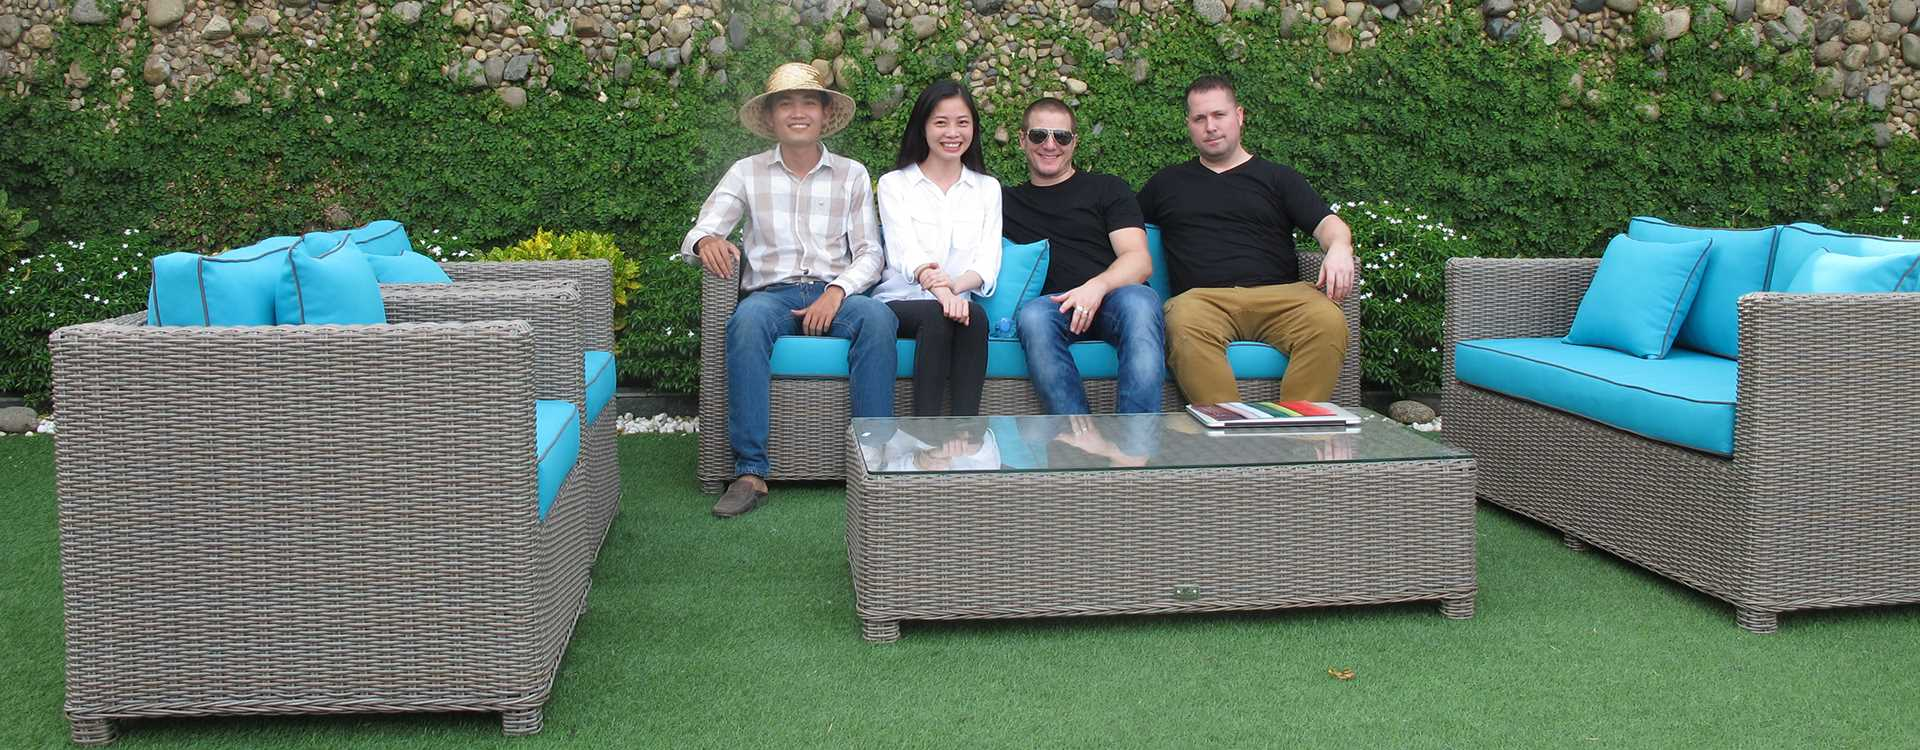 Vietnam Patio Furniture Factory Visiting